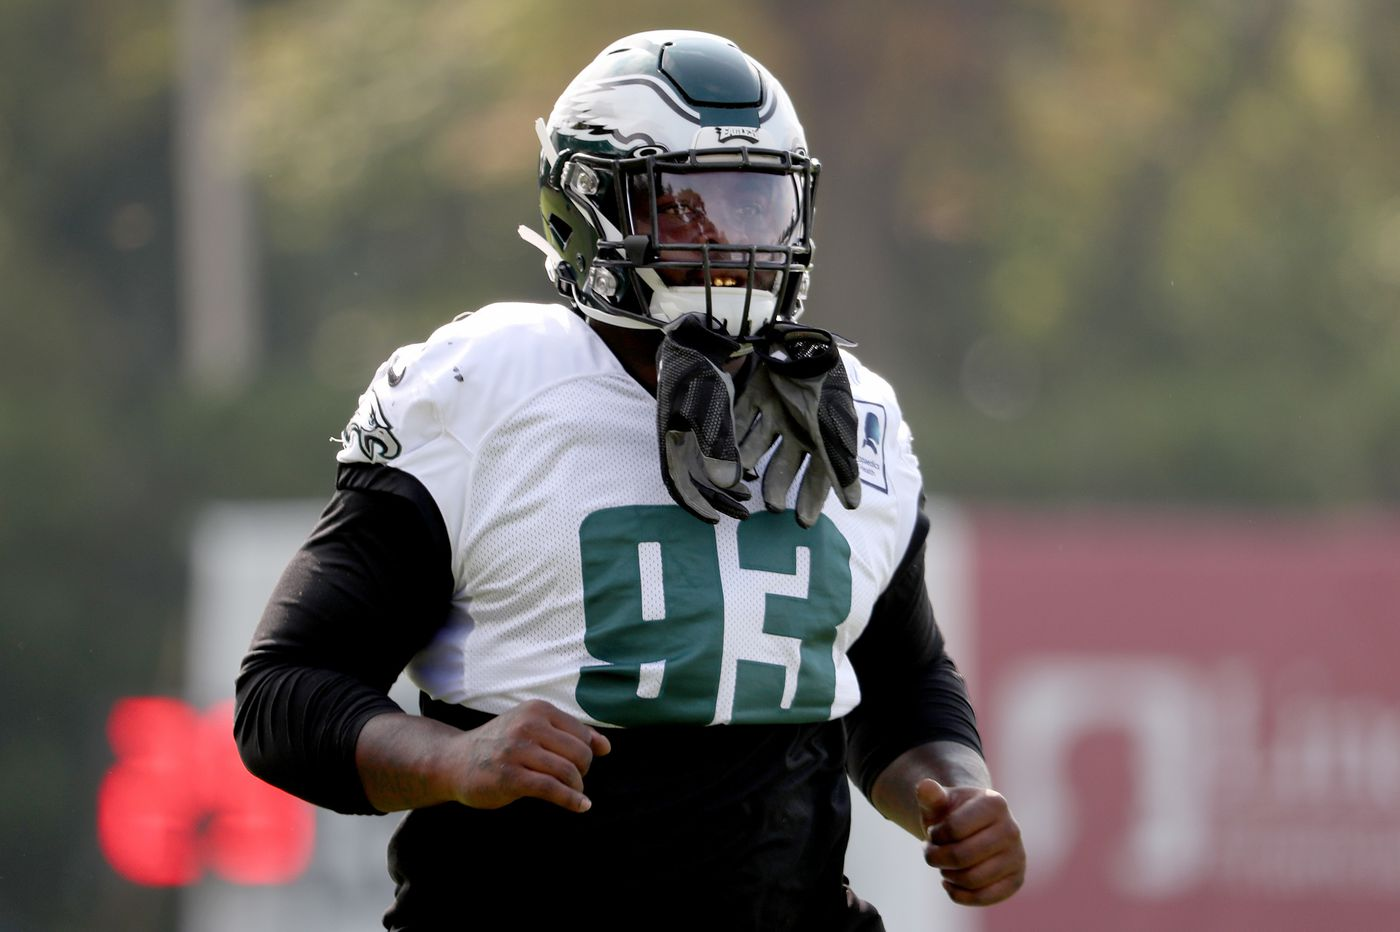 Tim Jernigan, once discarded, is bringing the fight to Eagles training camp | Jeff McLane